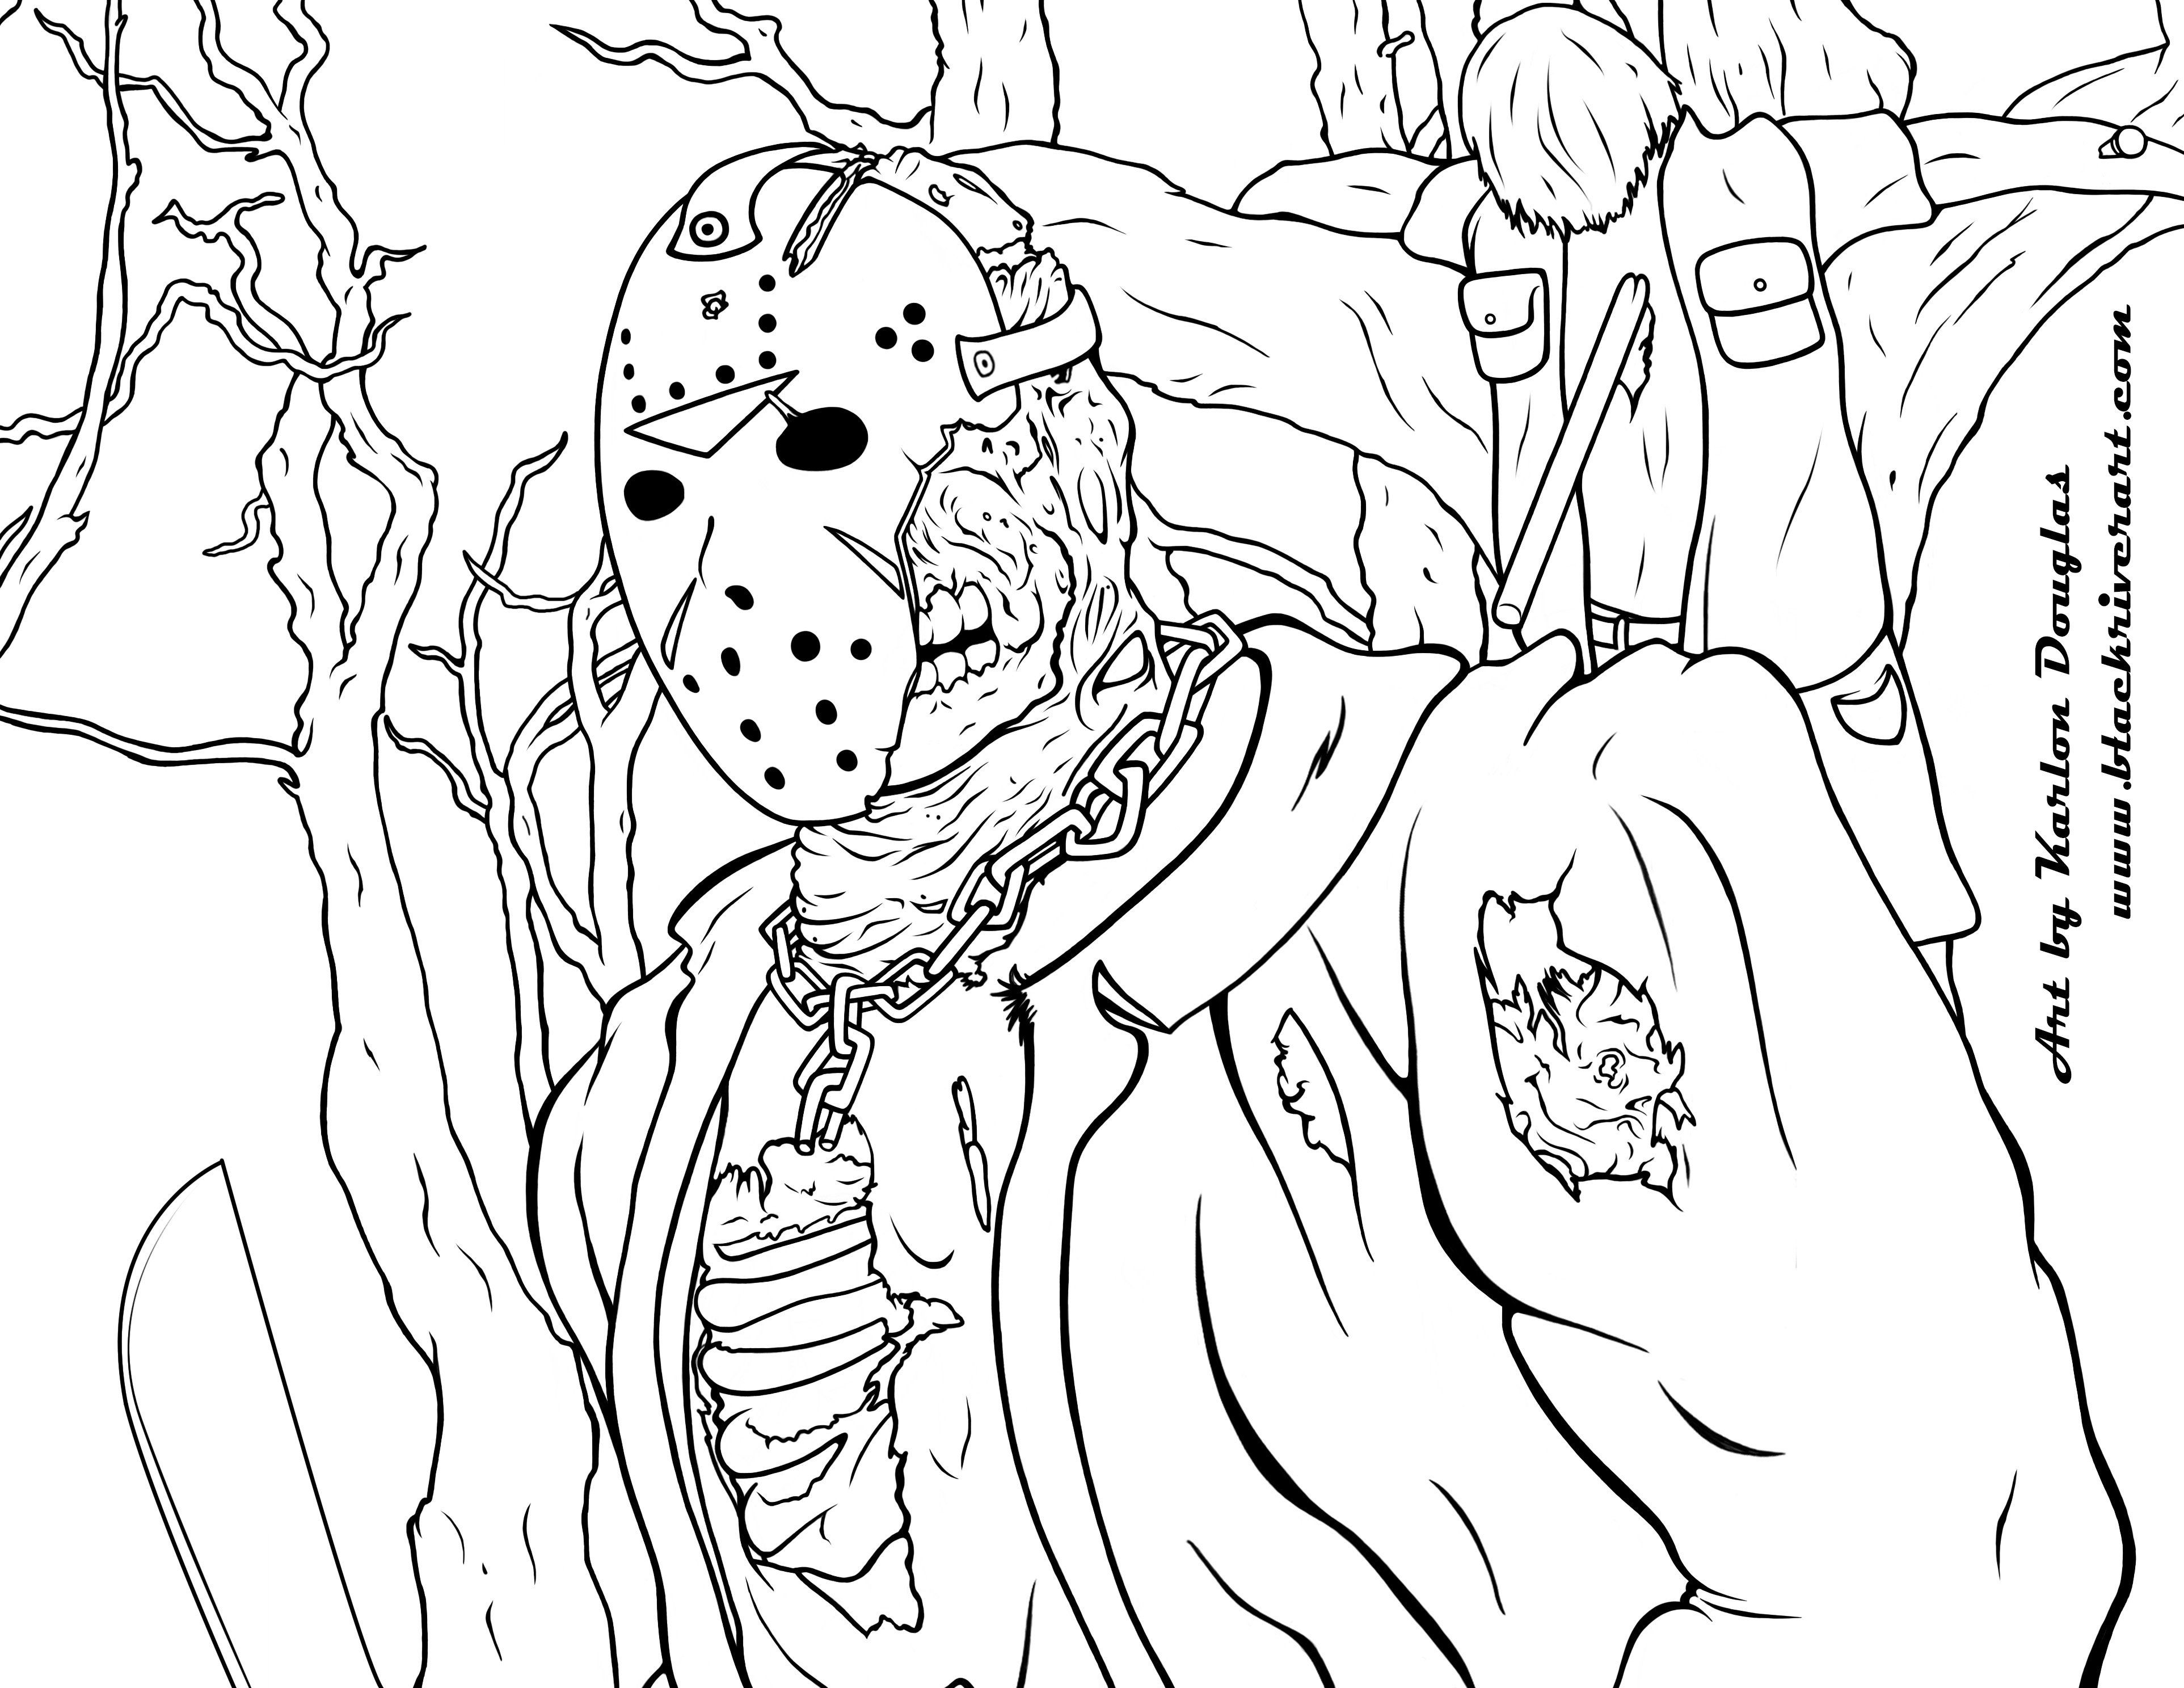 Jason Coloring Pages Free Coloring Book Pages For Adults Coloring Book Addict Coloring Book Art Coloring Books Cartoon Coloring Pages